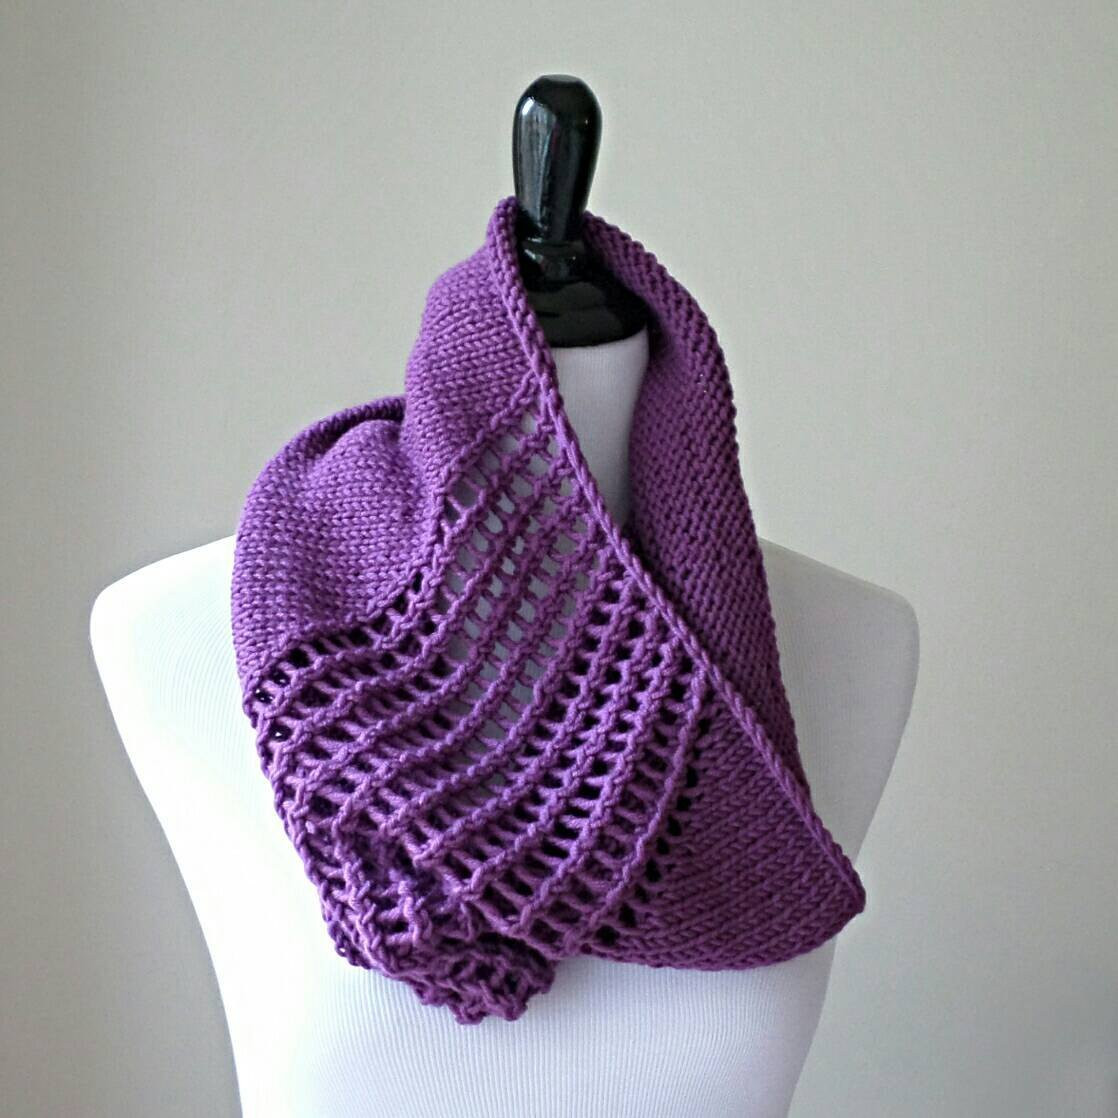 Fresh Handknit Infinity Scarf Women S Lace Cowl In Purple Lace Infinity Scarf Of Charming 45 Ideas Lace Infinity Scarf